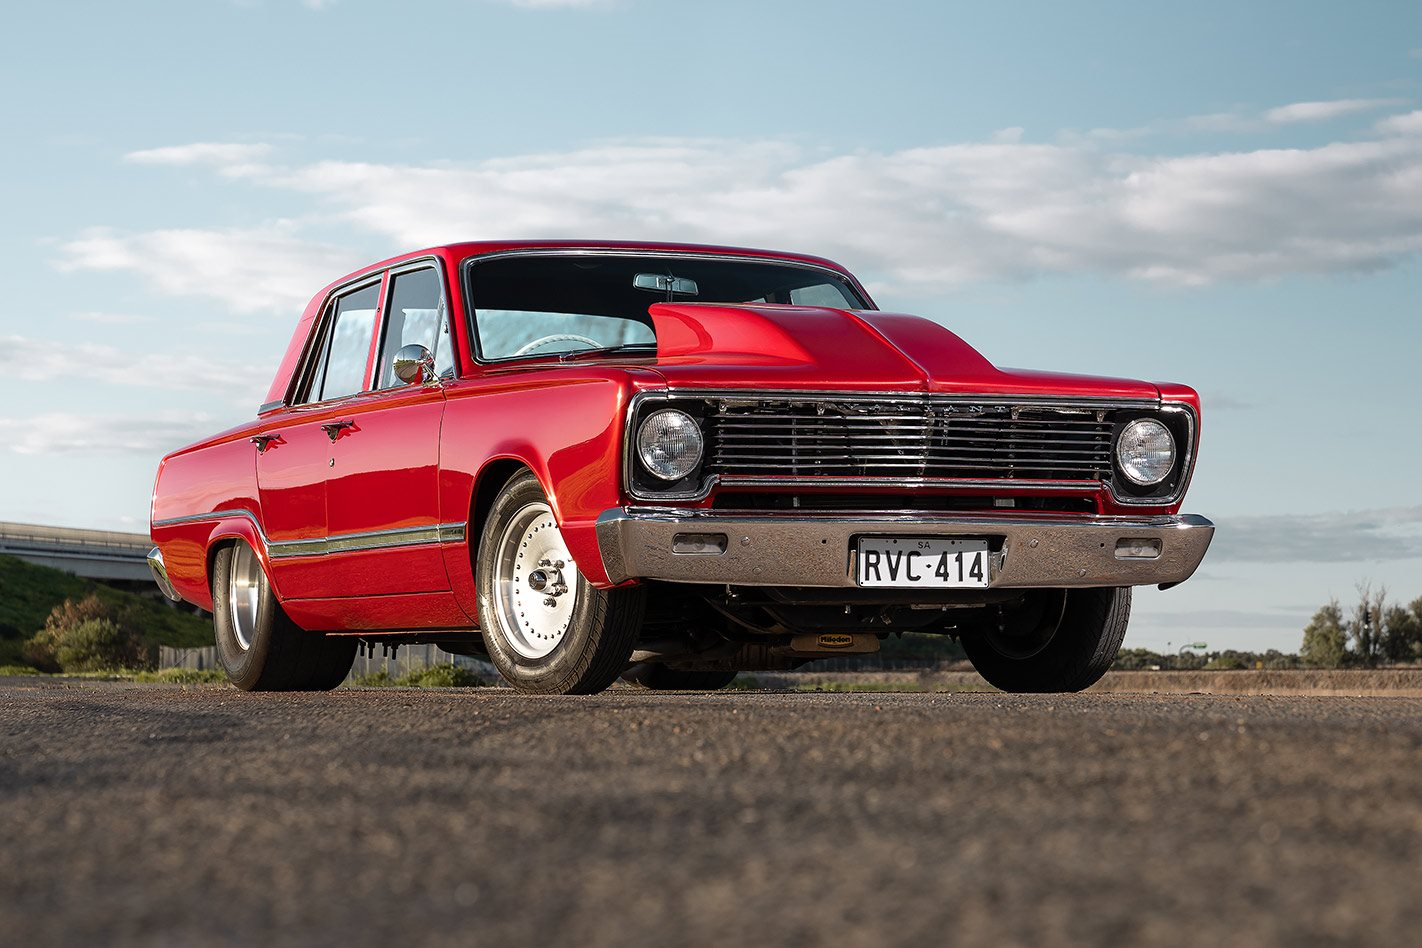 414ci Mopar-powered 1967 Chrysler VC Valiant Regal